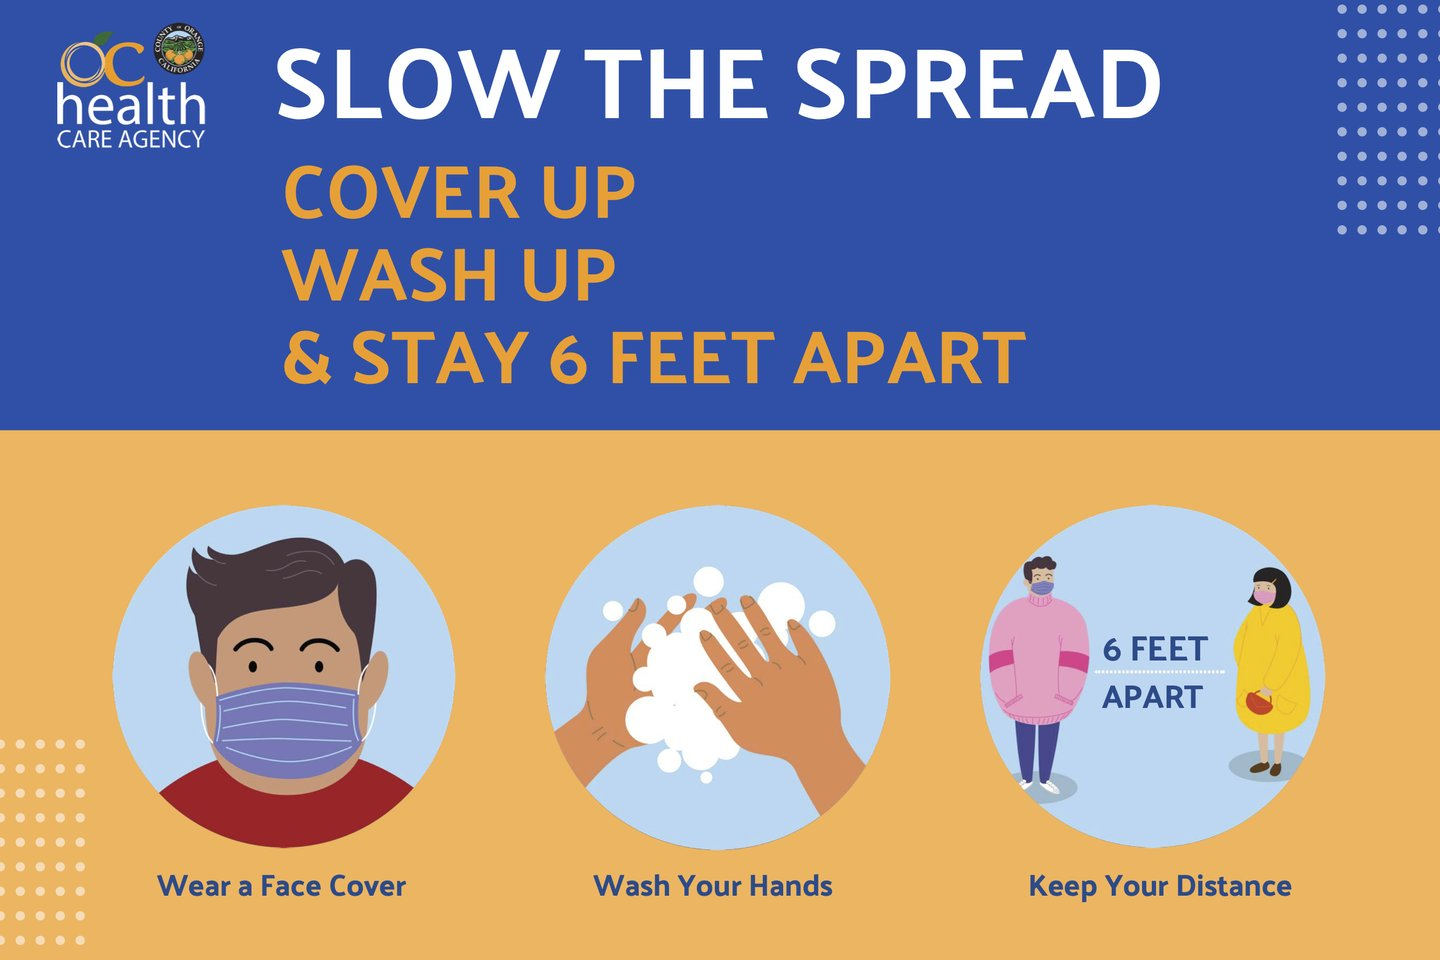 Slow the spread graphic